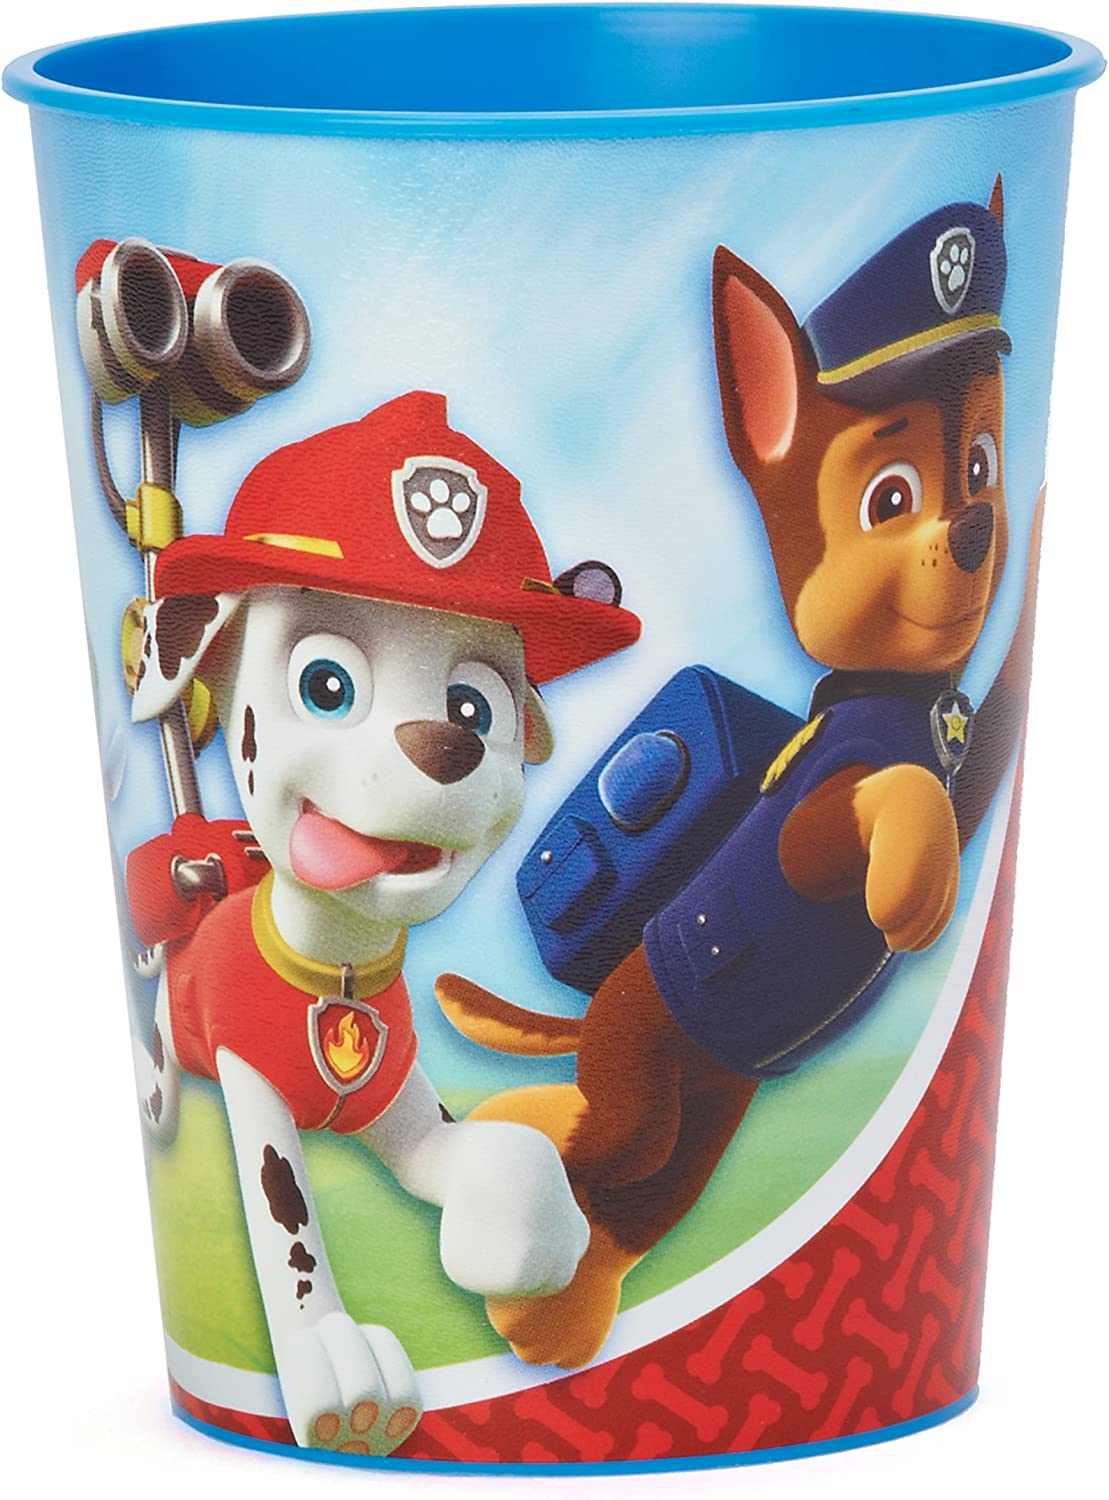 Party Supplies 8 Count AMERICAN GREETINGS PAW Patrol 7 Square Plate